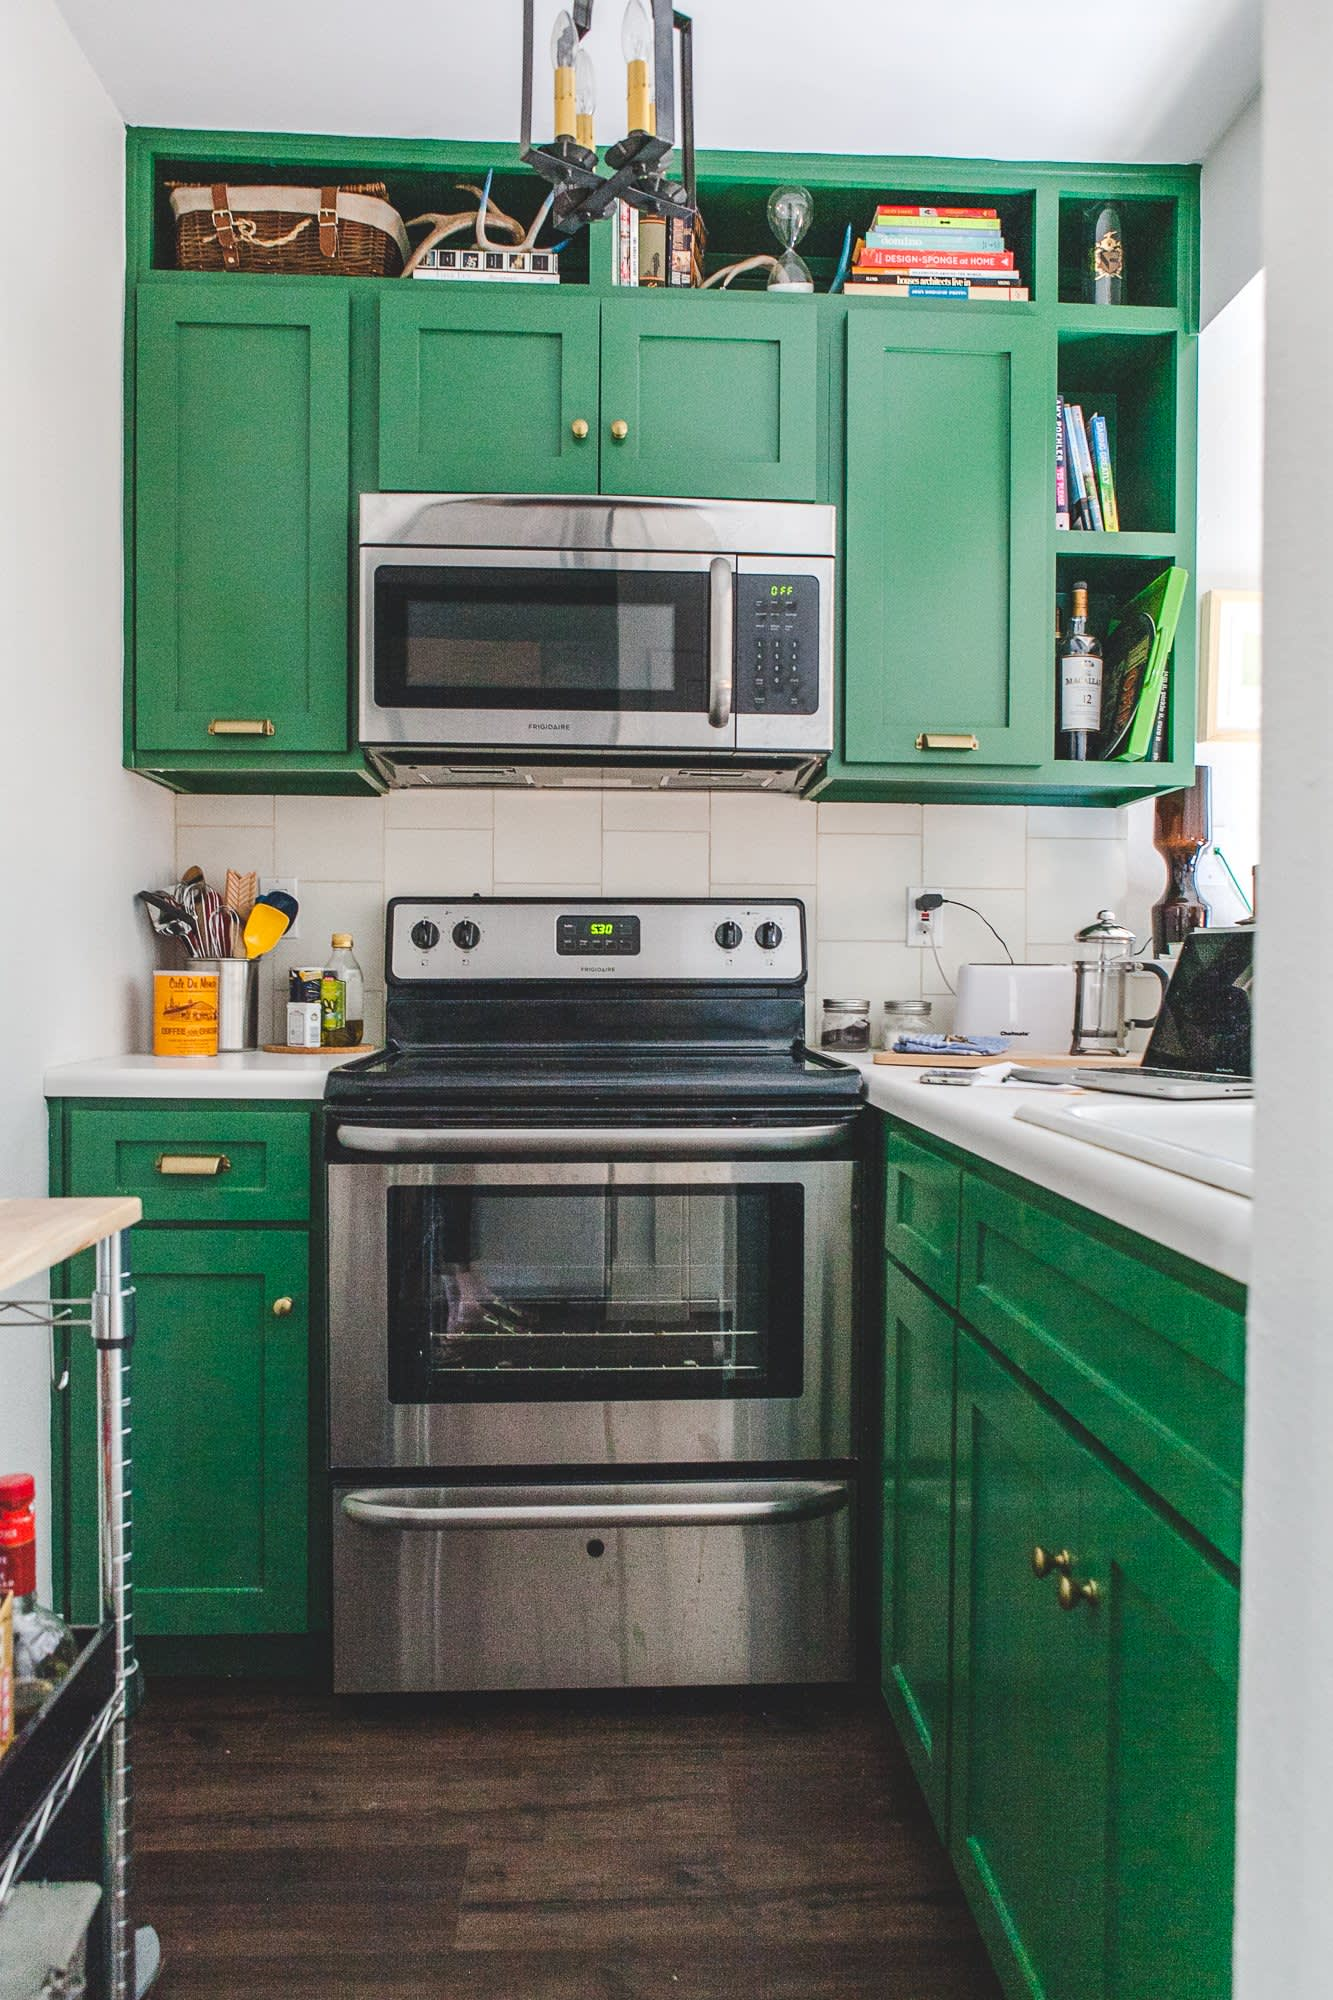 10 Secrets of the Organized Kitchen: gallery image 10